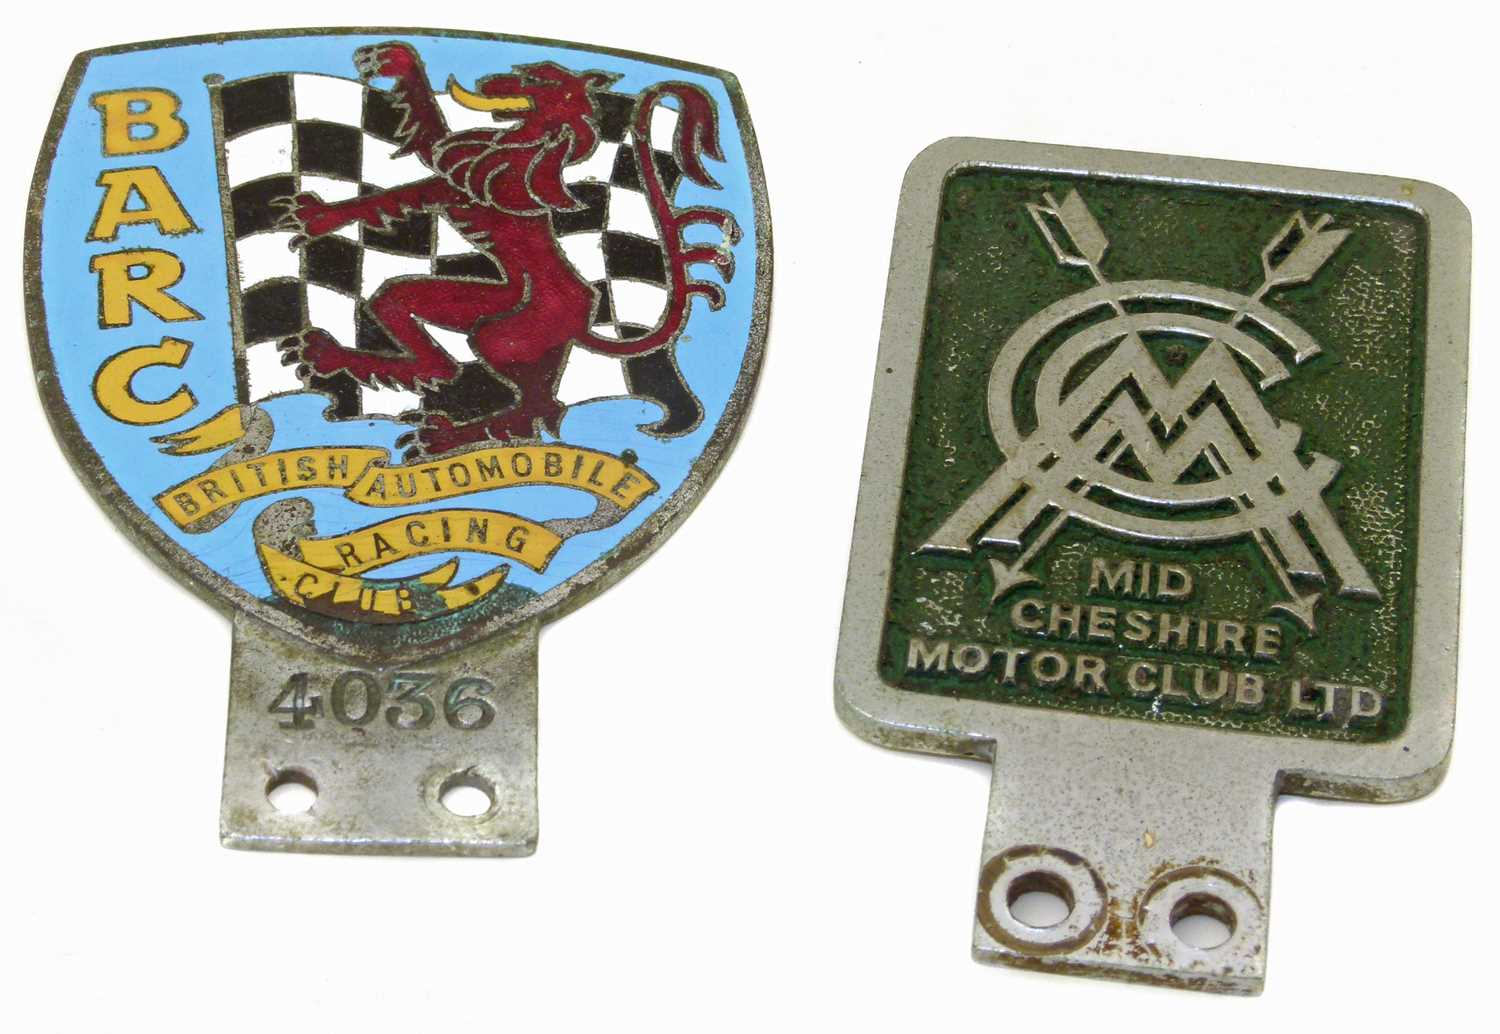 Lot 12-British Automobile Racing Club (BARC) badge and a Mid Cheshire Motor Club Badge.